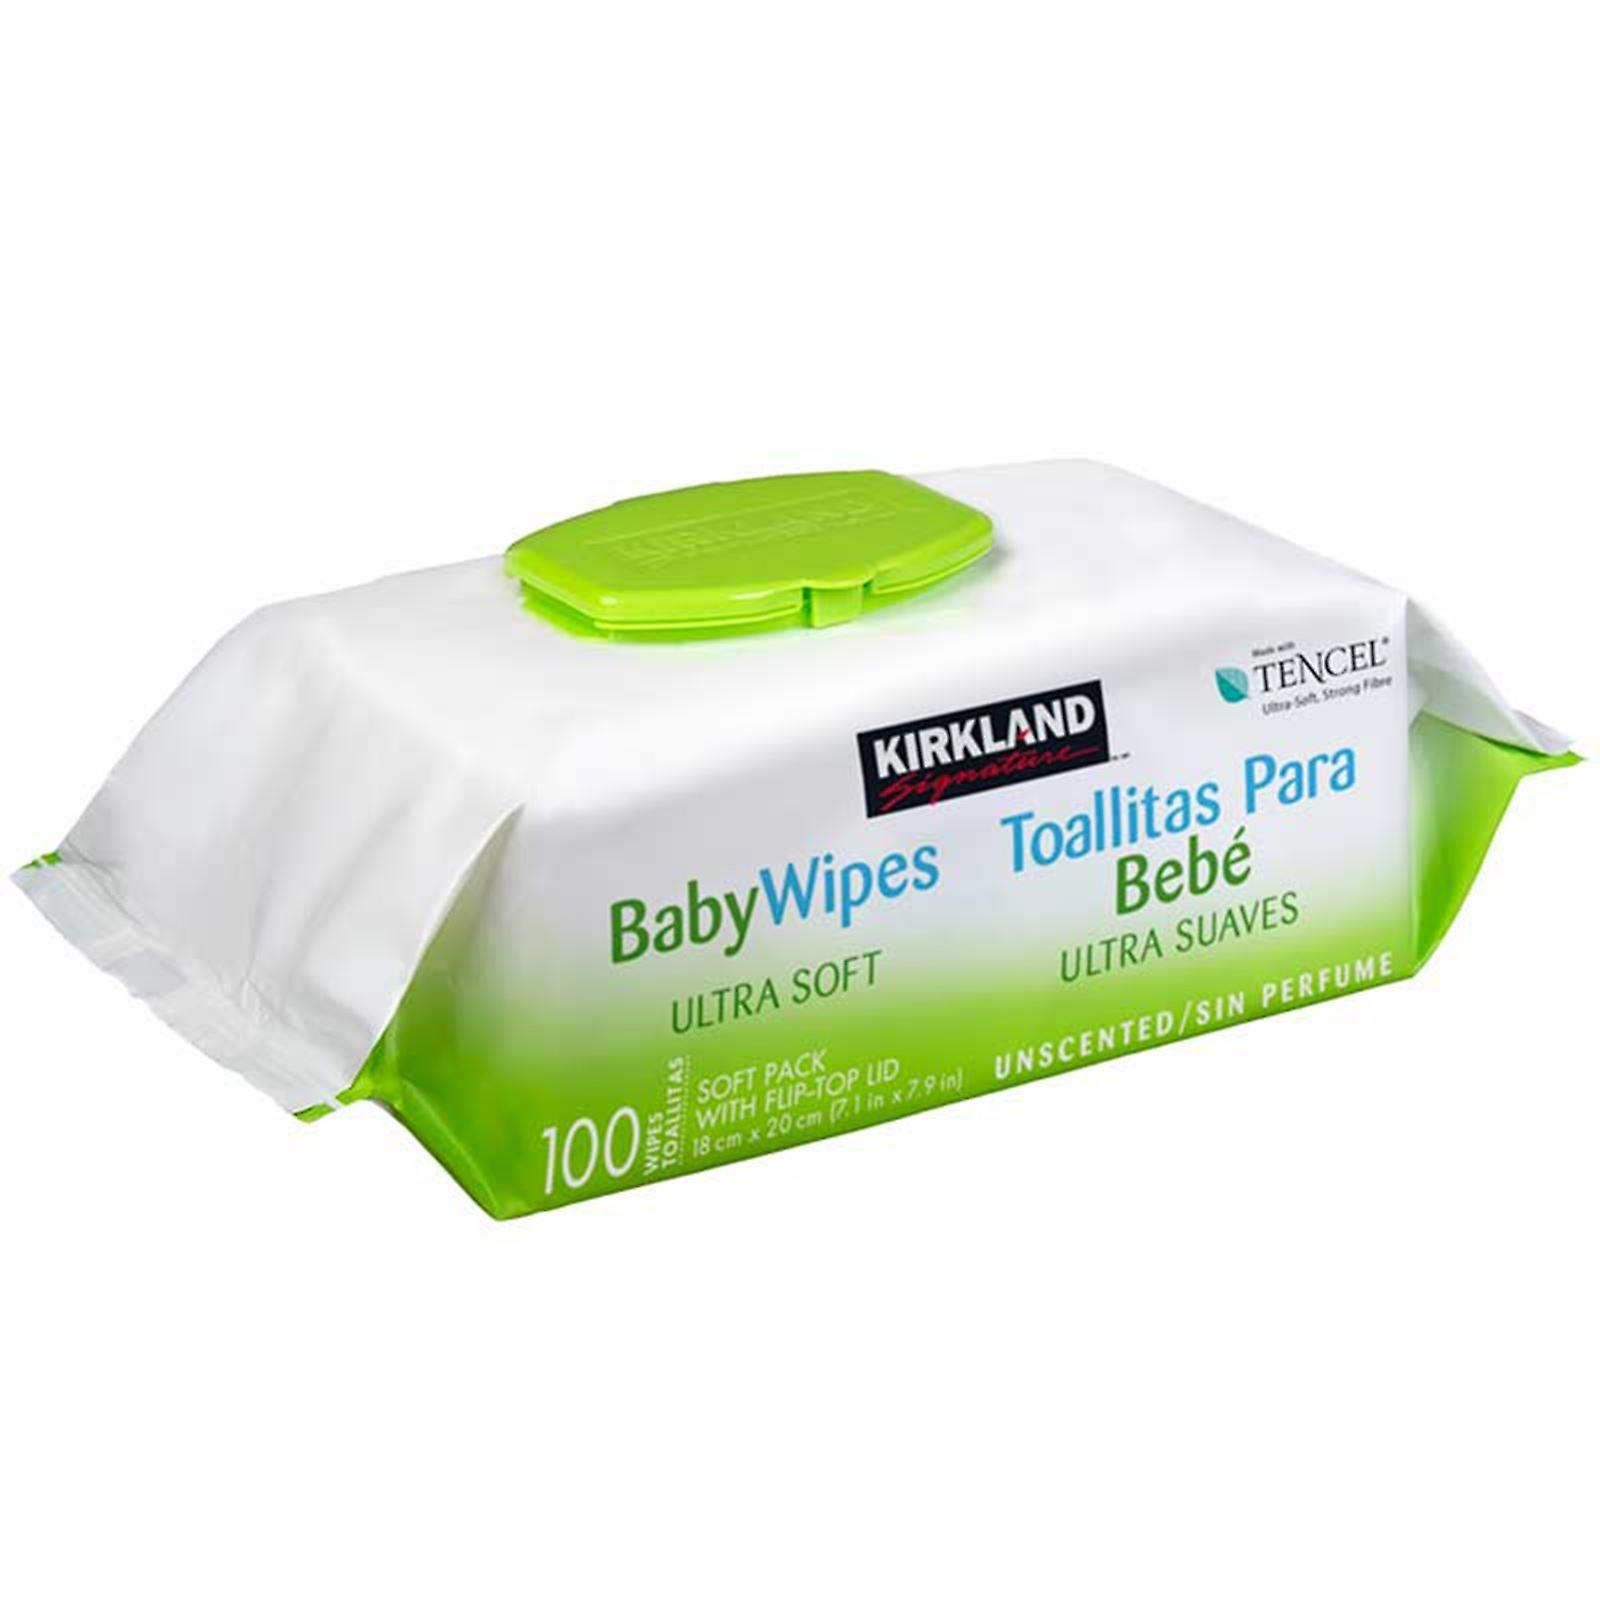 Kirkland Signature Baby Wipes Ultra Soft Pack of 900